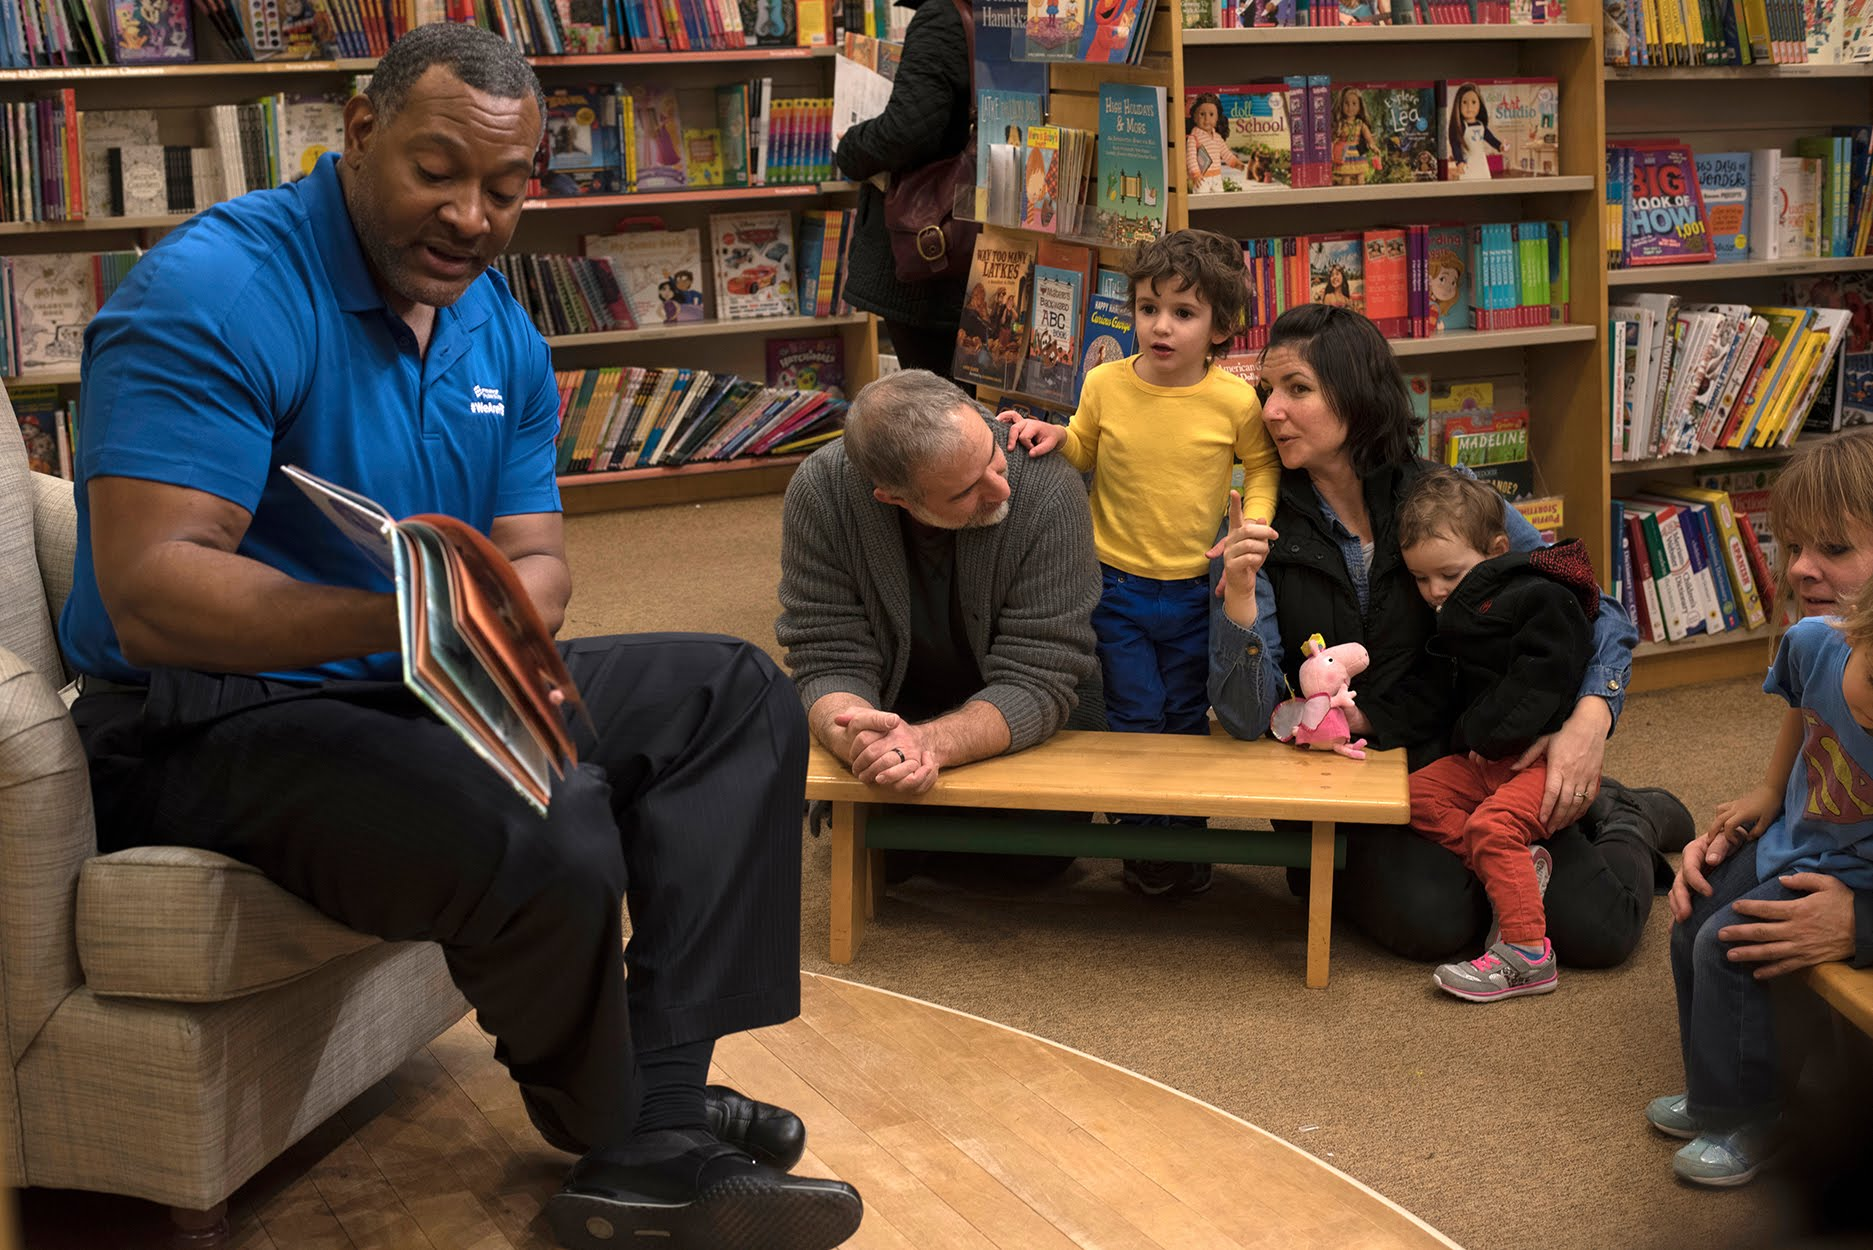 Anna Batista encourages her son Nelson, age 3, to listen Dr. Anthony Hamlet - superintendent of Pittsburgh Public Schools - as he reads to students from Colfax Elementary School at the Barnes & Noble at The Waterfront. Batista is joined by her daughter Alma ands her husband Aaron Batista. (Photo by Martha Rial/PublicSource)